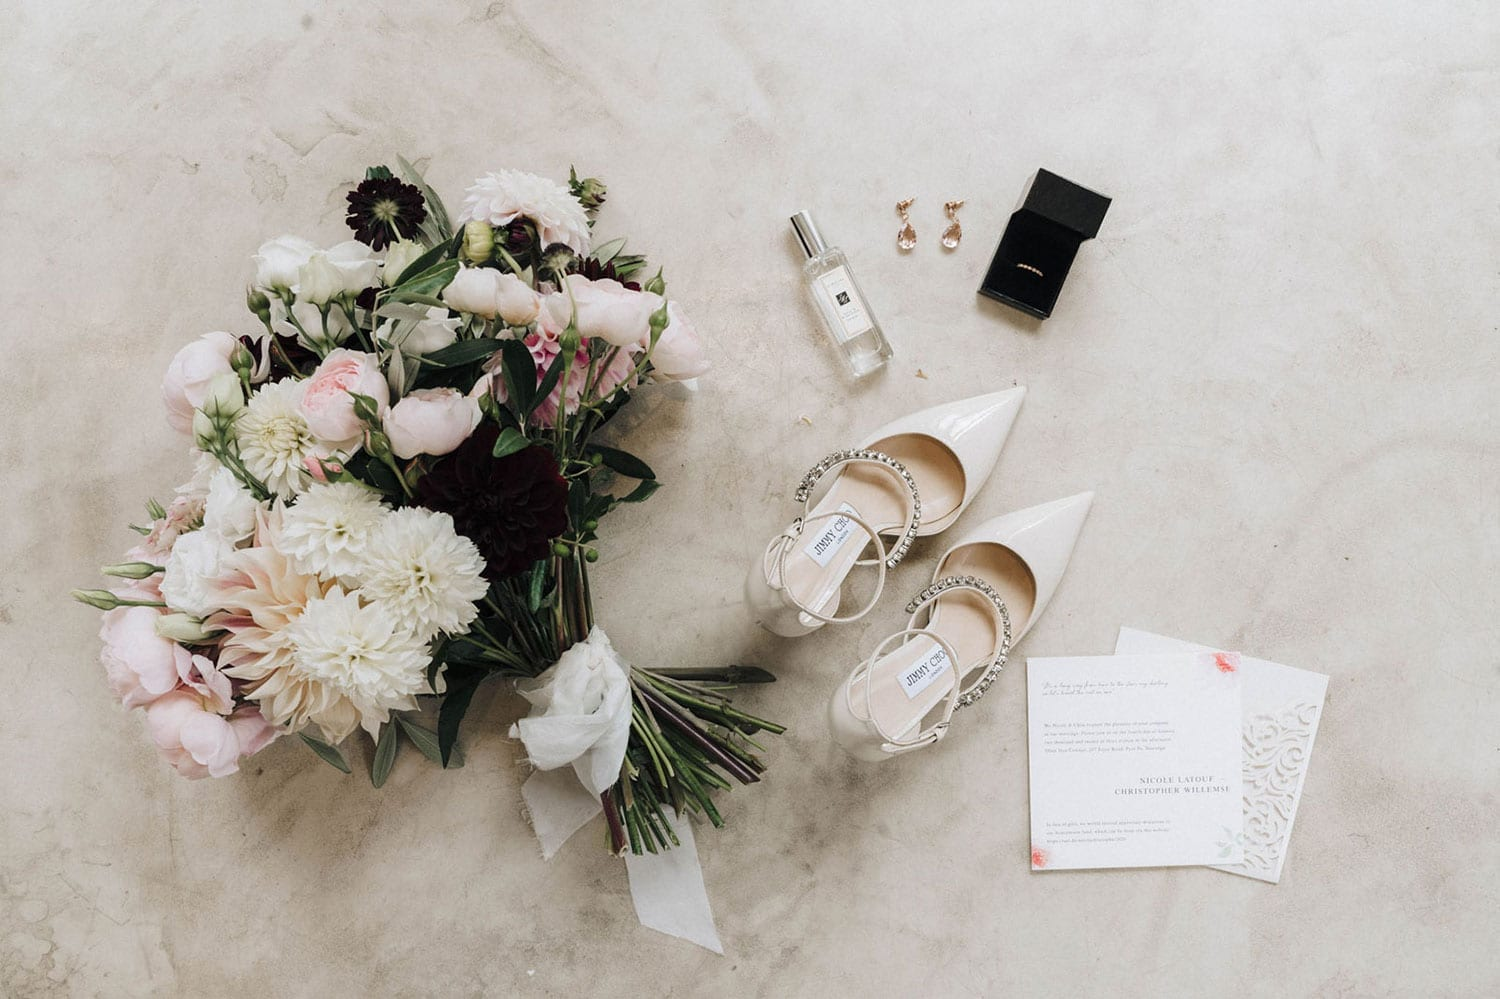 Vinka Design Features Real Weddings - bouquet, shoes, perfume and invitation